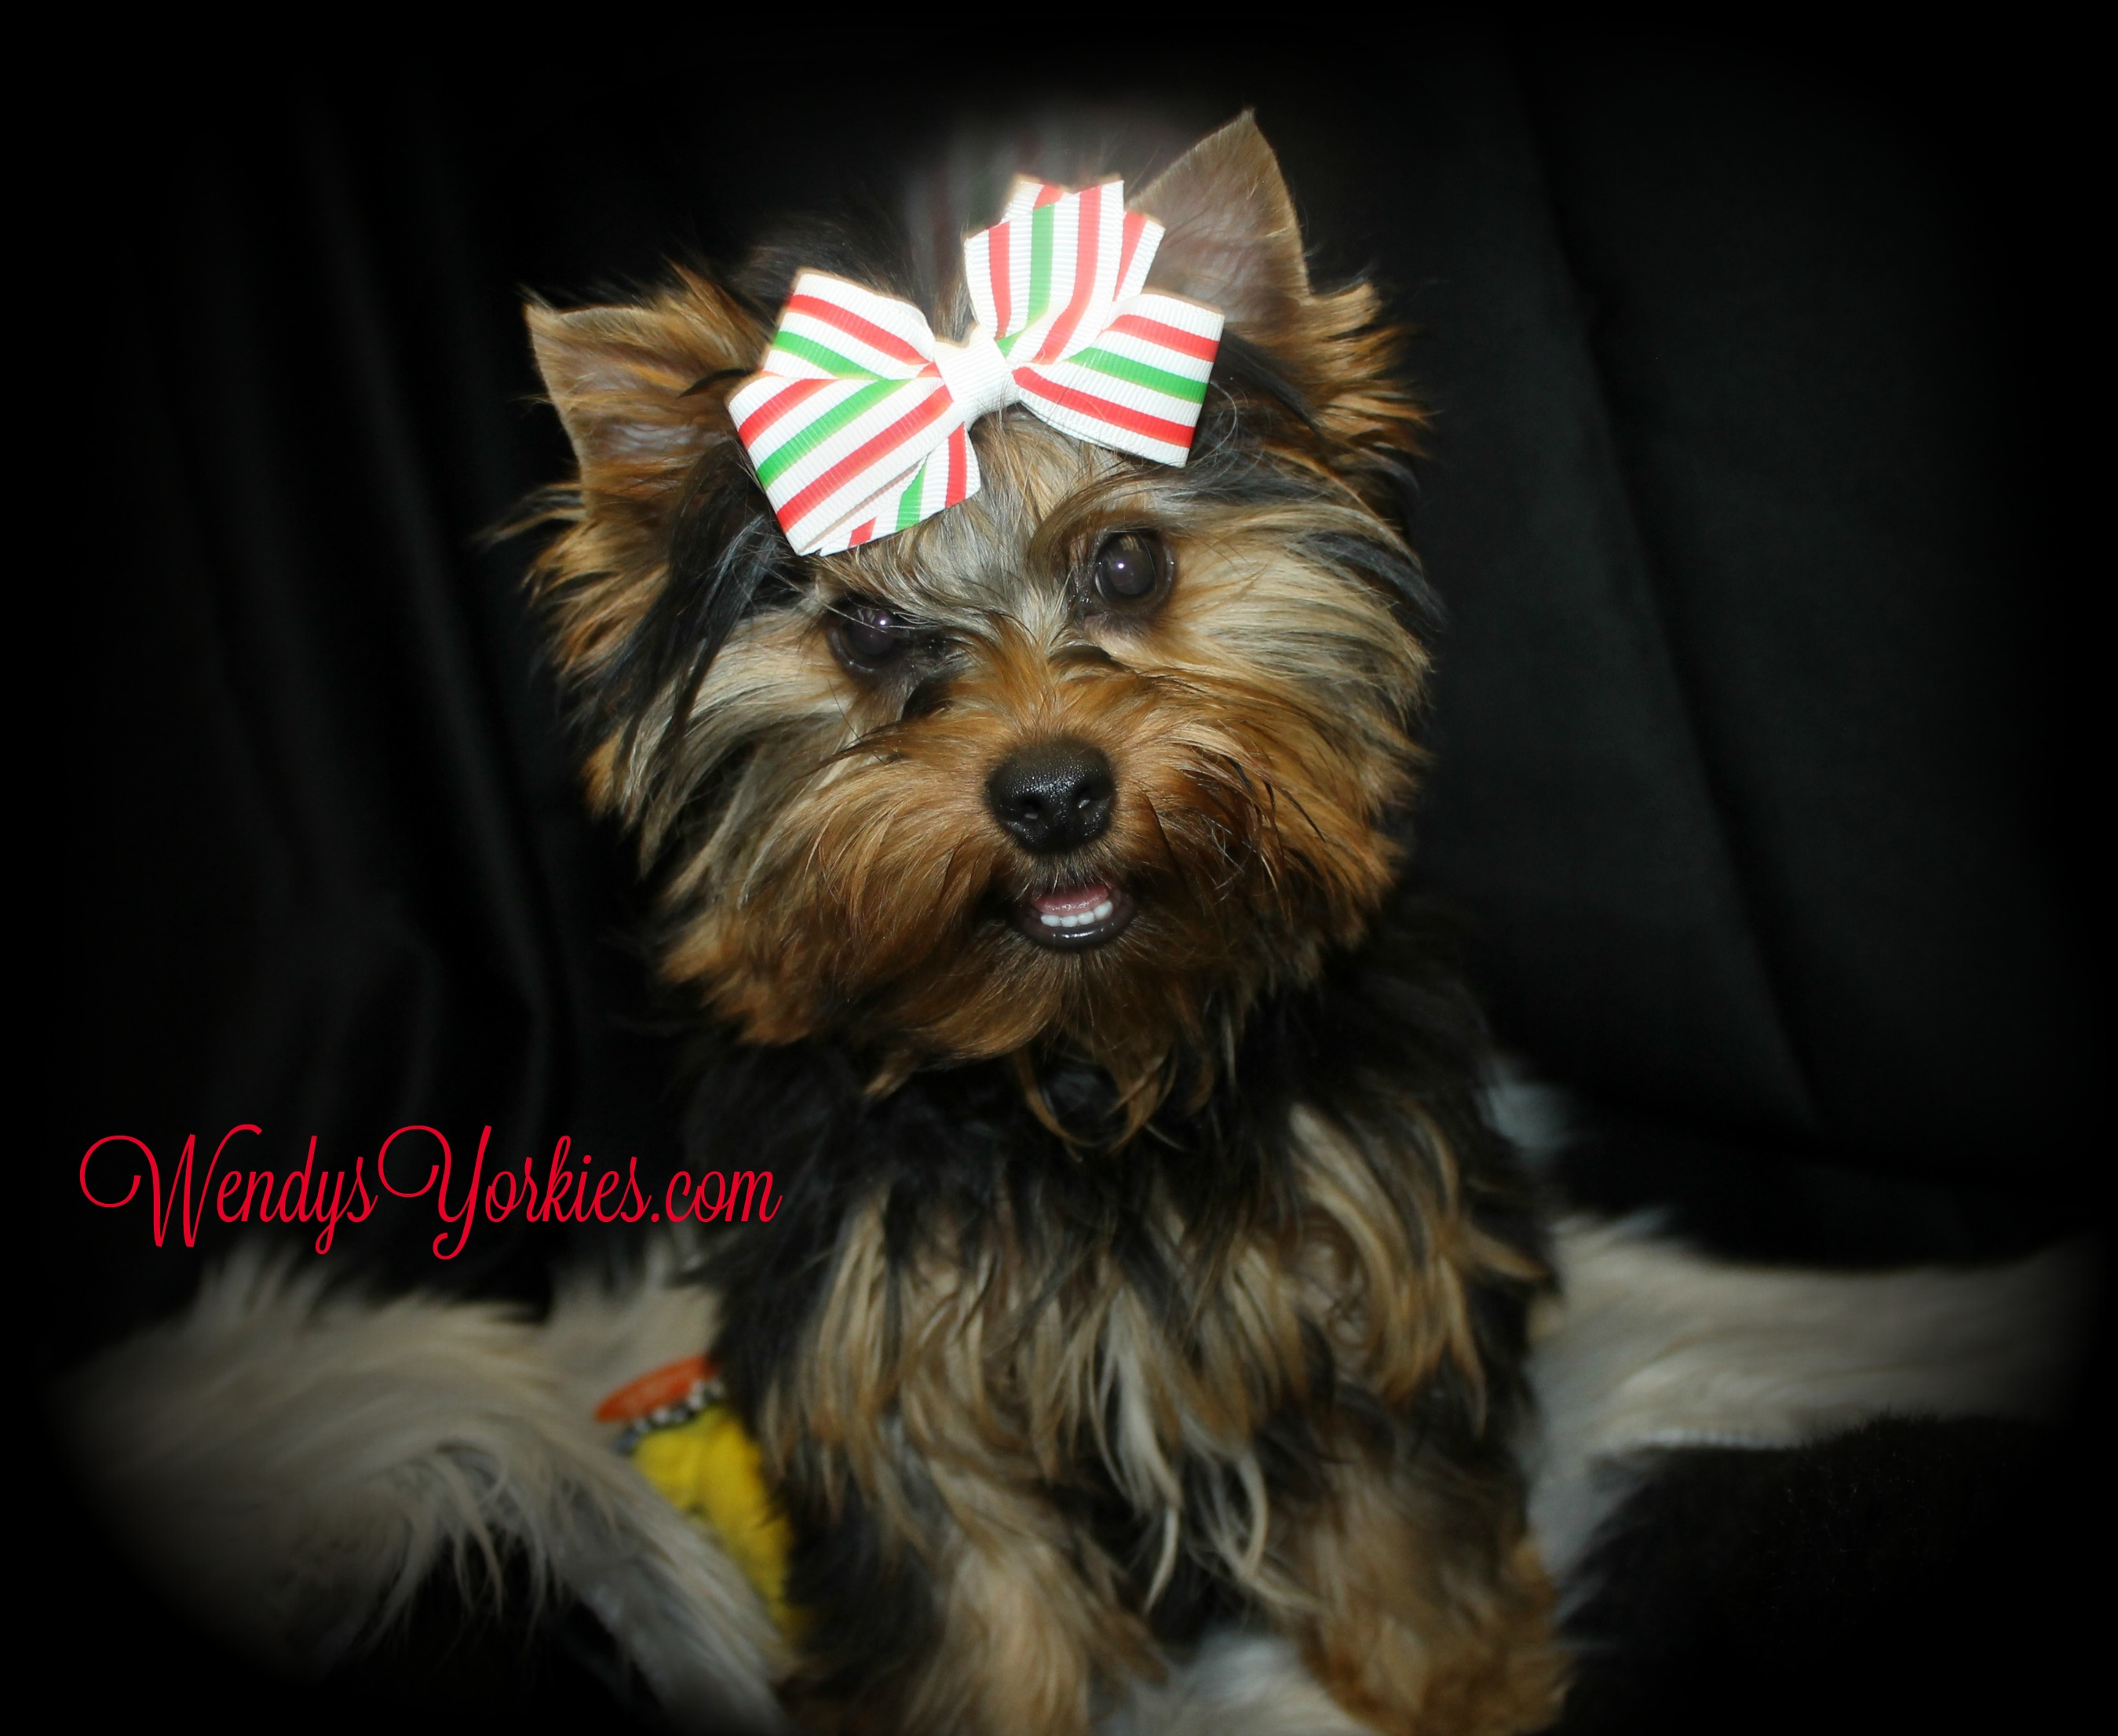 Yorkies puppies for sale, WendysYorkies.com, Abby m1